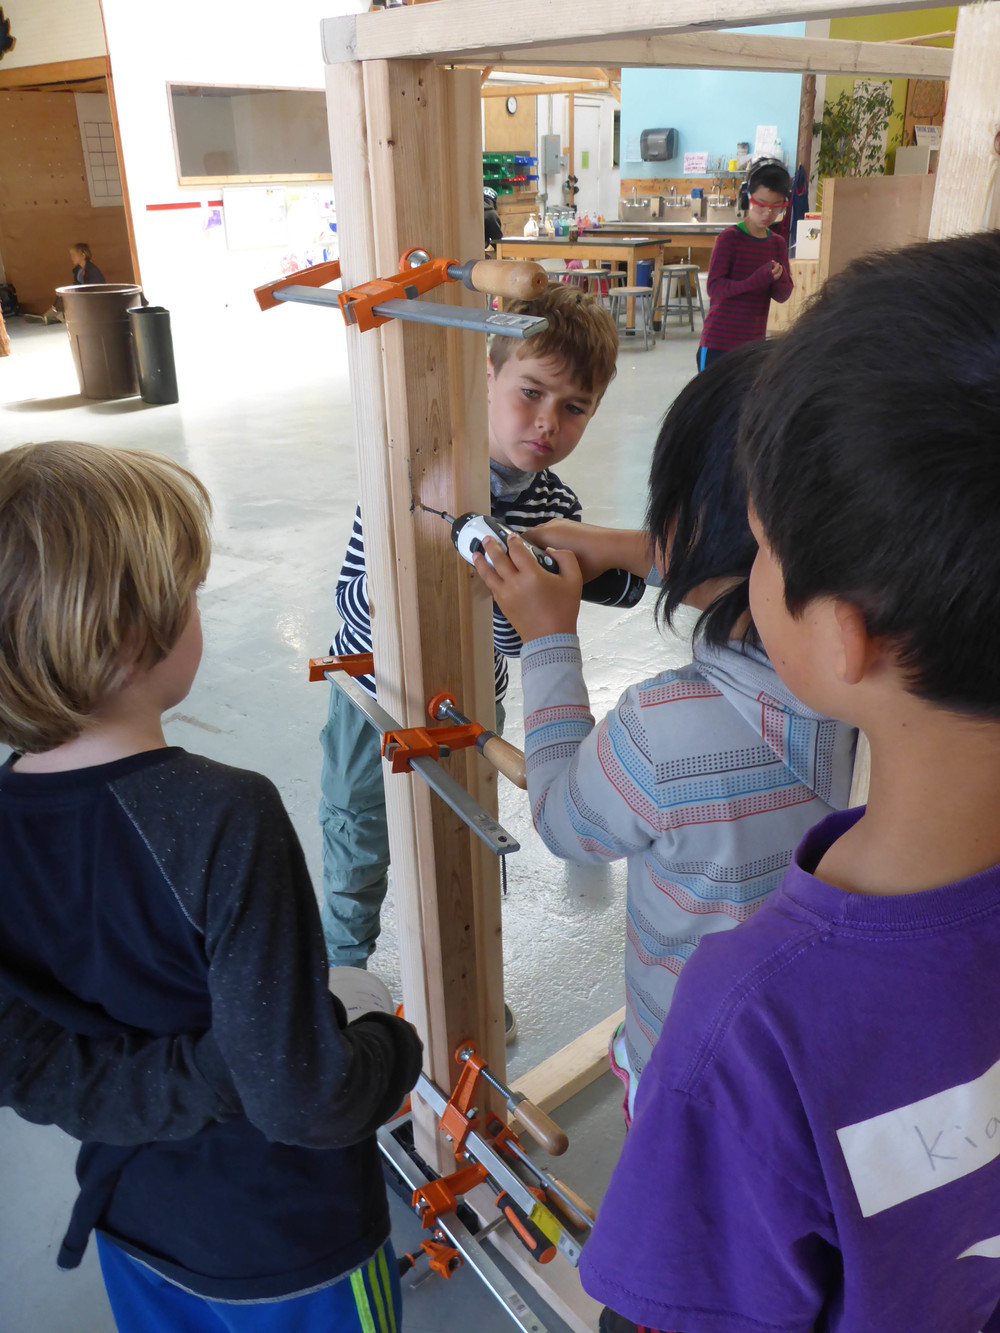 Ari, Oliver and Kian stand by after clamping to wall together, while Orin does some fastening.